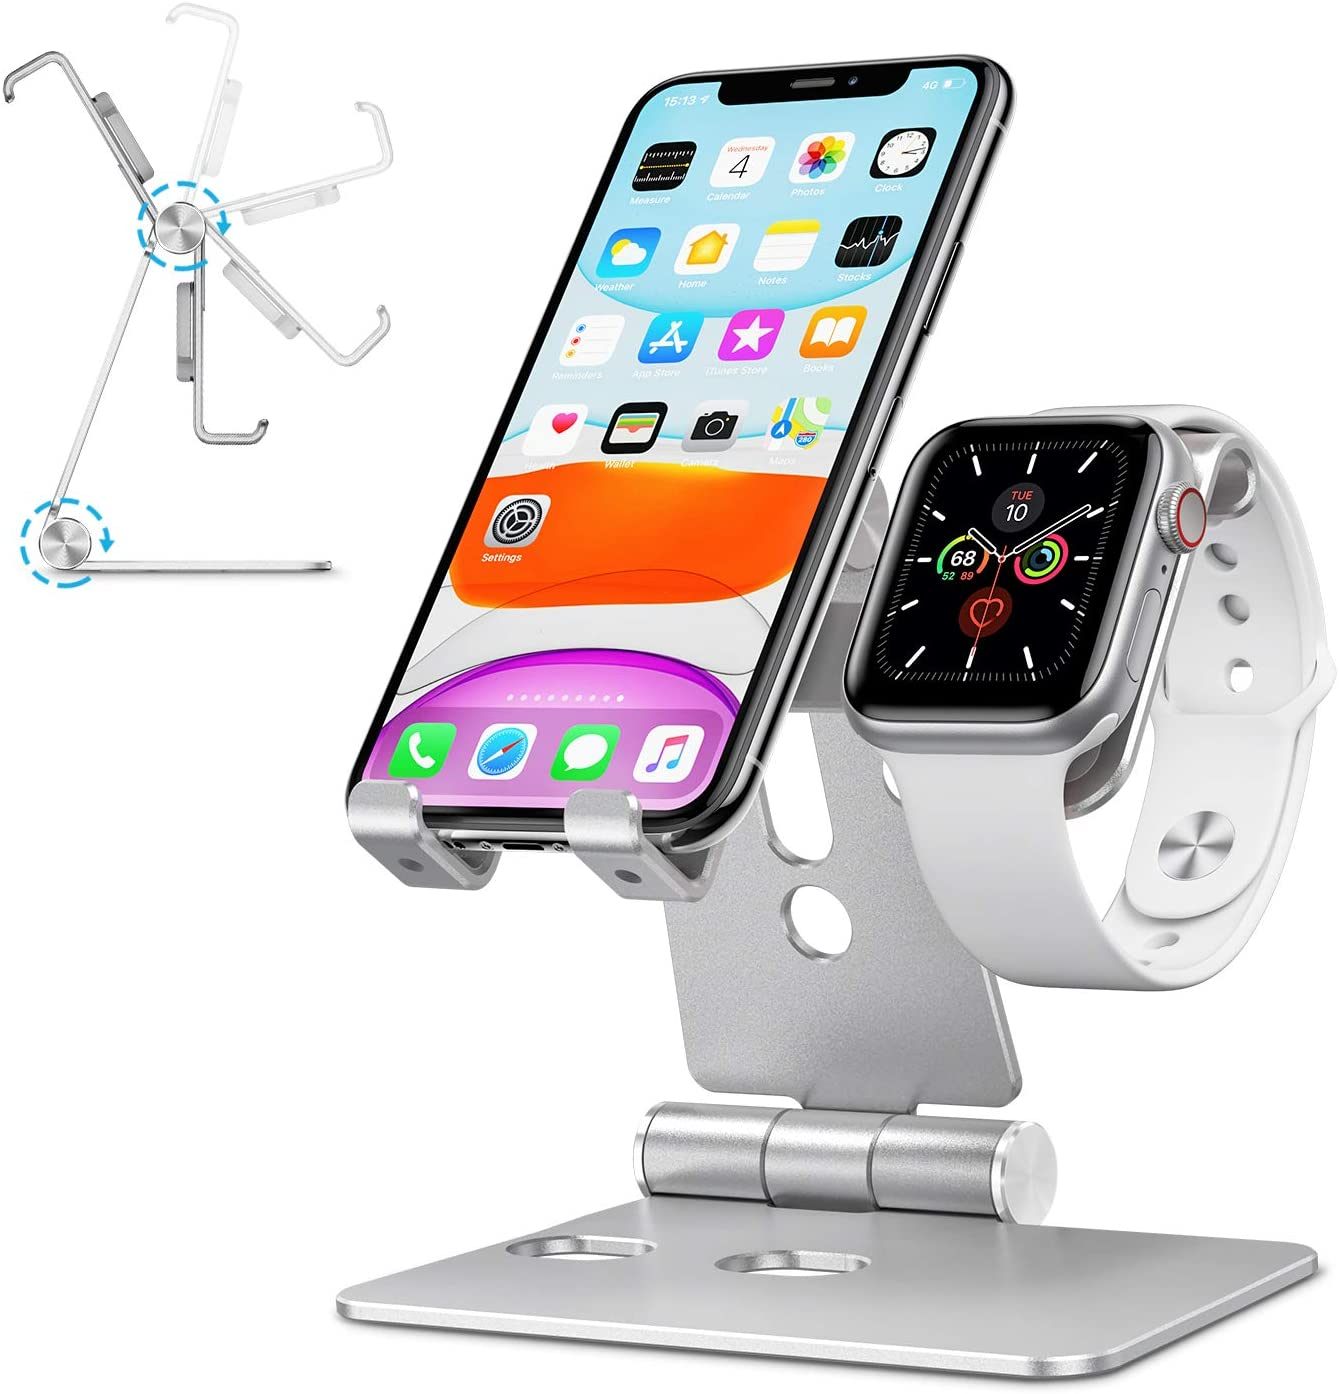 Apple Watch Charger Stand Accessories - OMOTON 2 in 1 Aluminum Foldable Desktop Charging Stand Holder Dock for nightstand Desk,Suit for Apple Watch SE/6/5/4/3/2/1, iPhone and Smart Phones, Silver